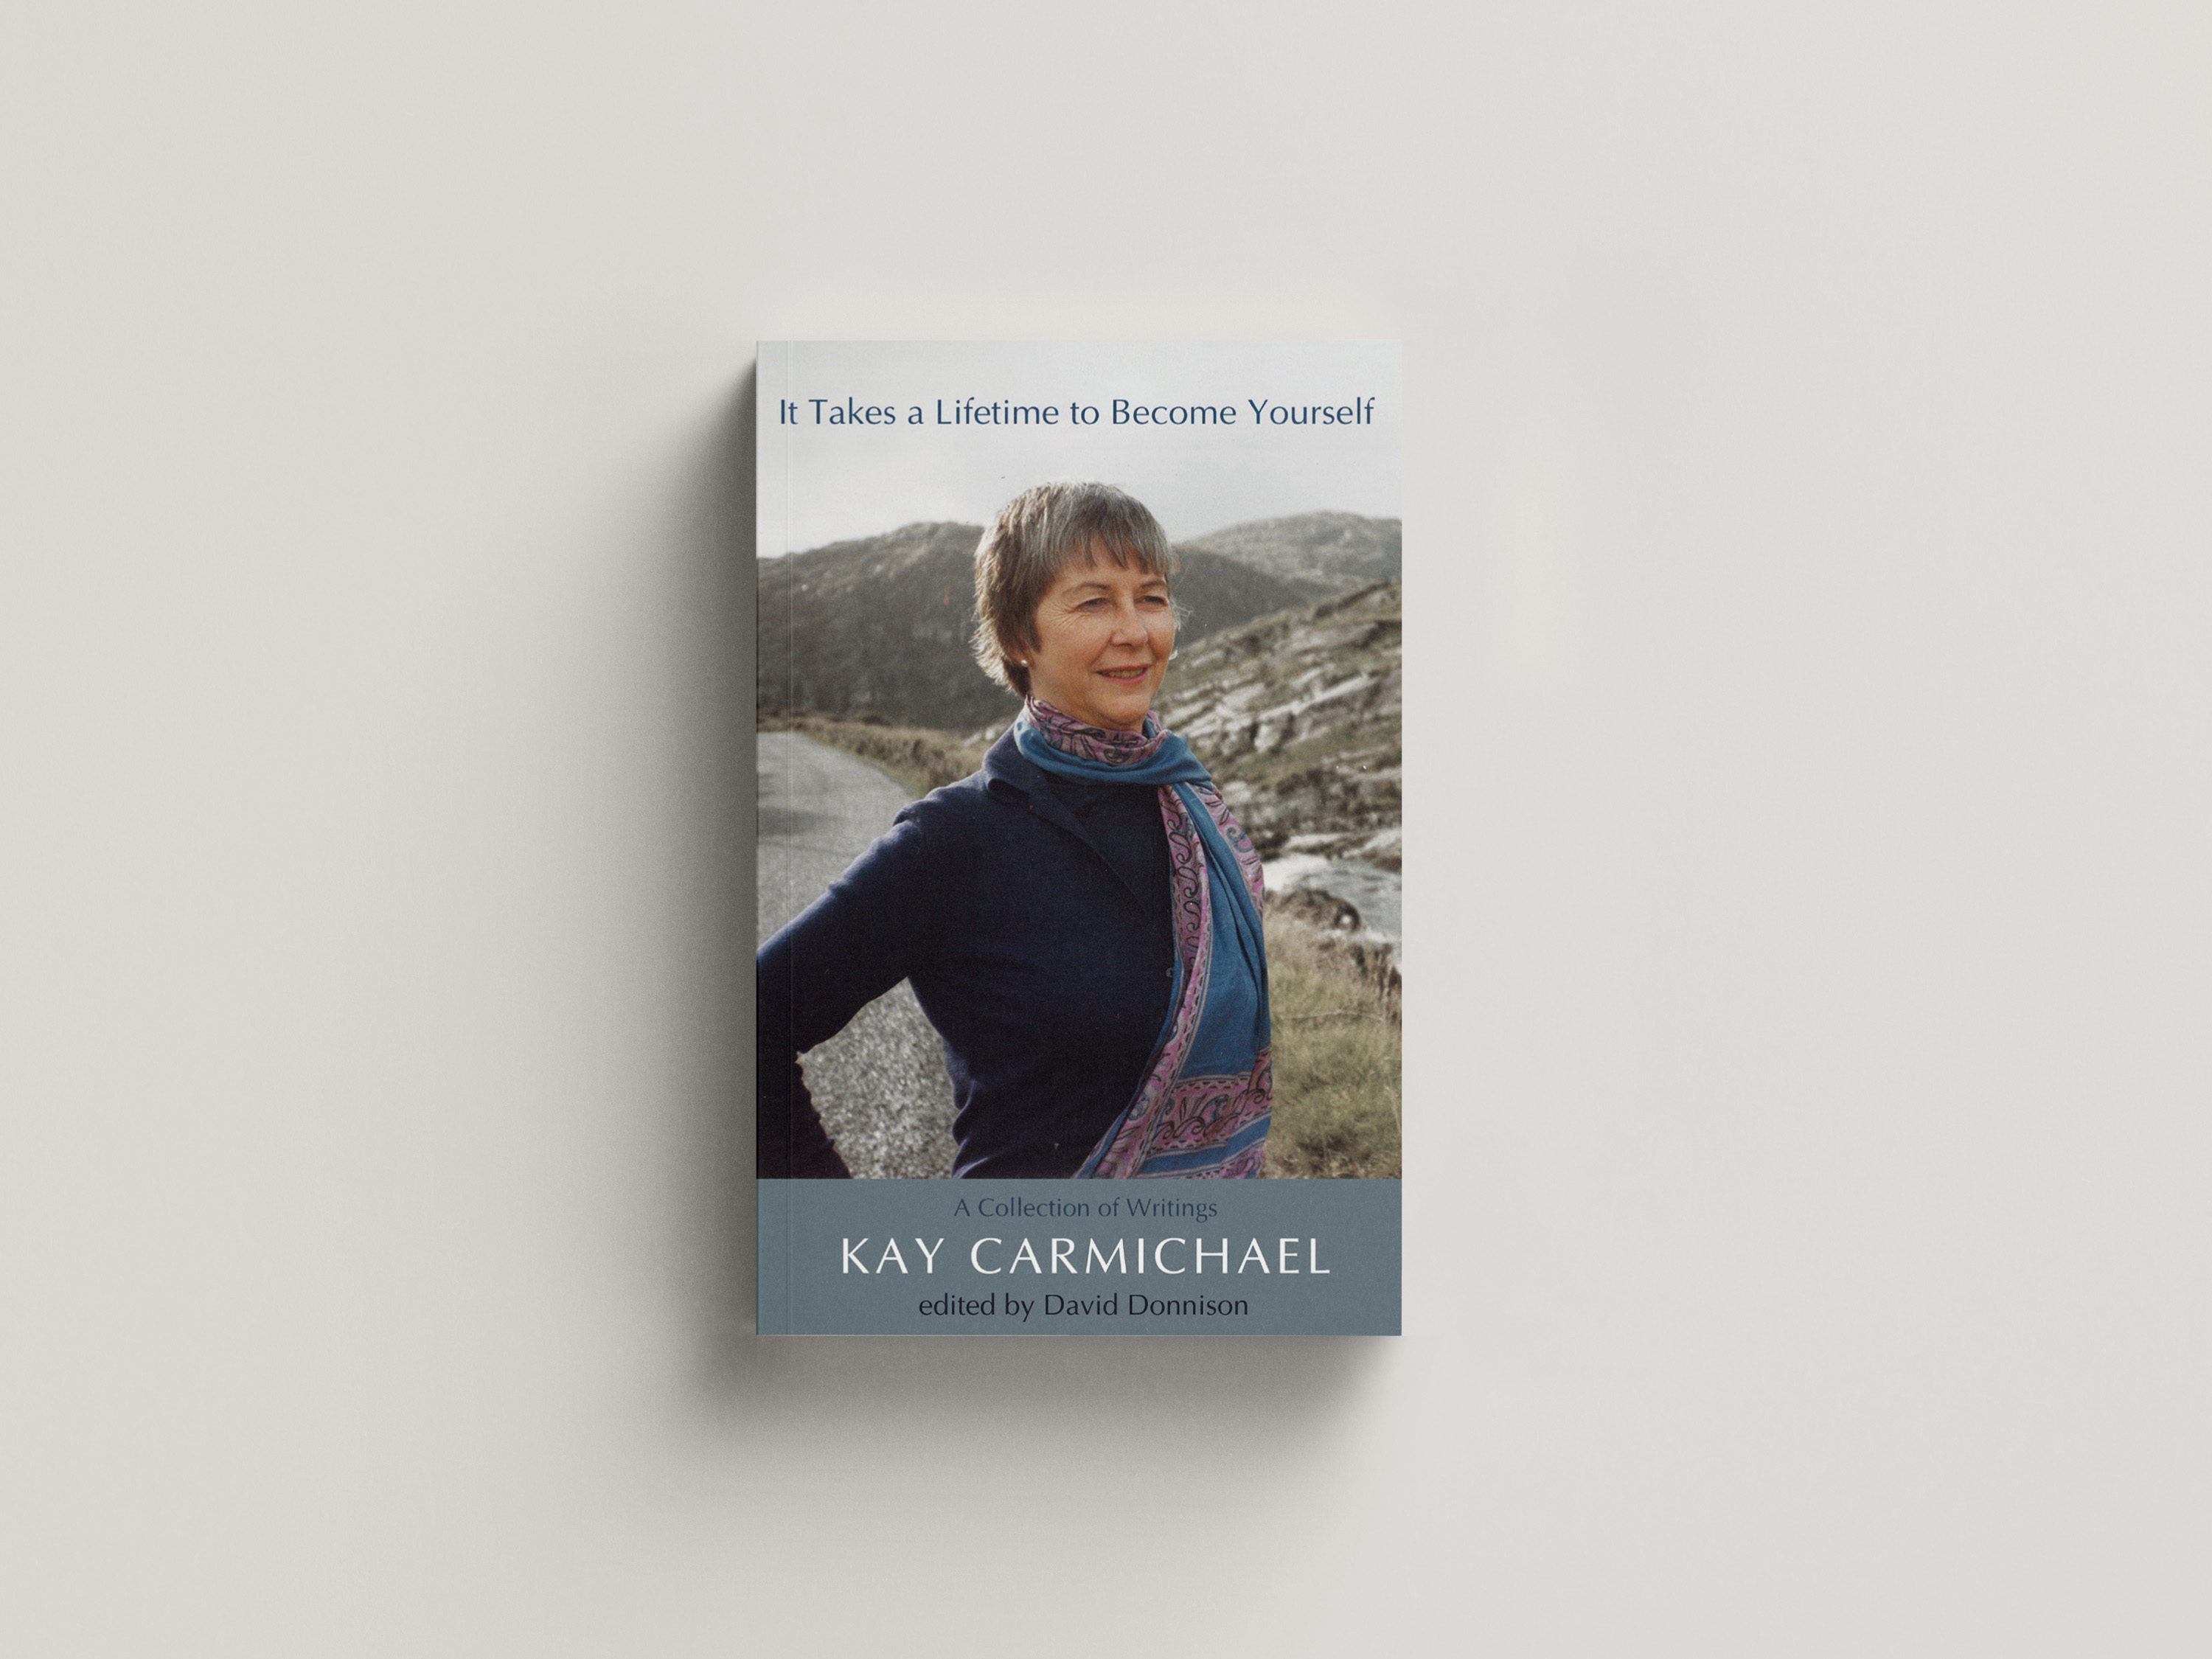 A portrait of Kay Carmicheal witha backdrop of hills